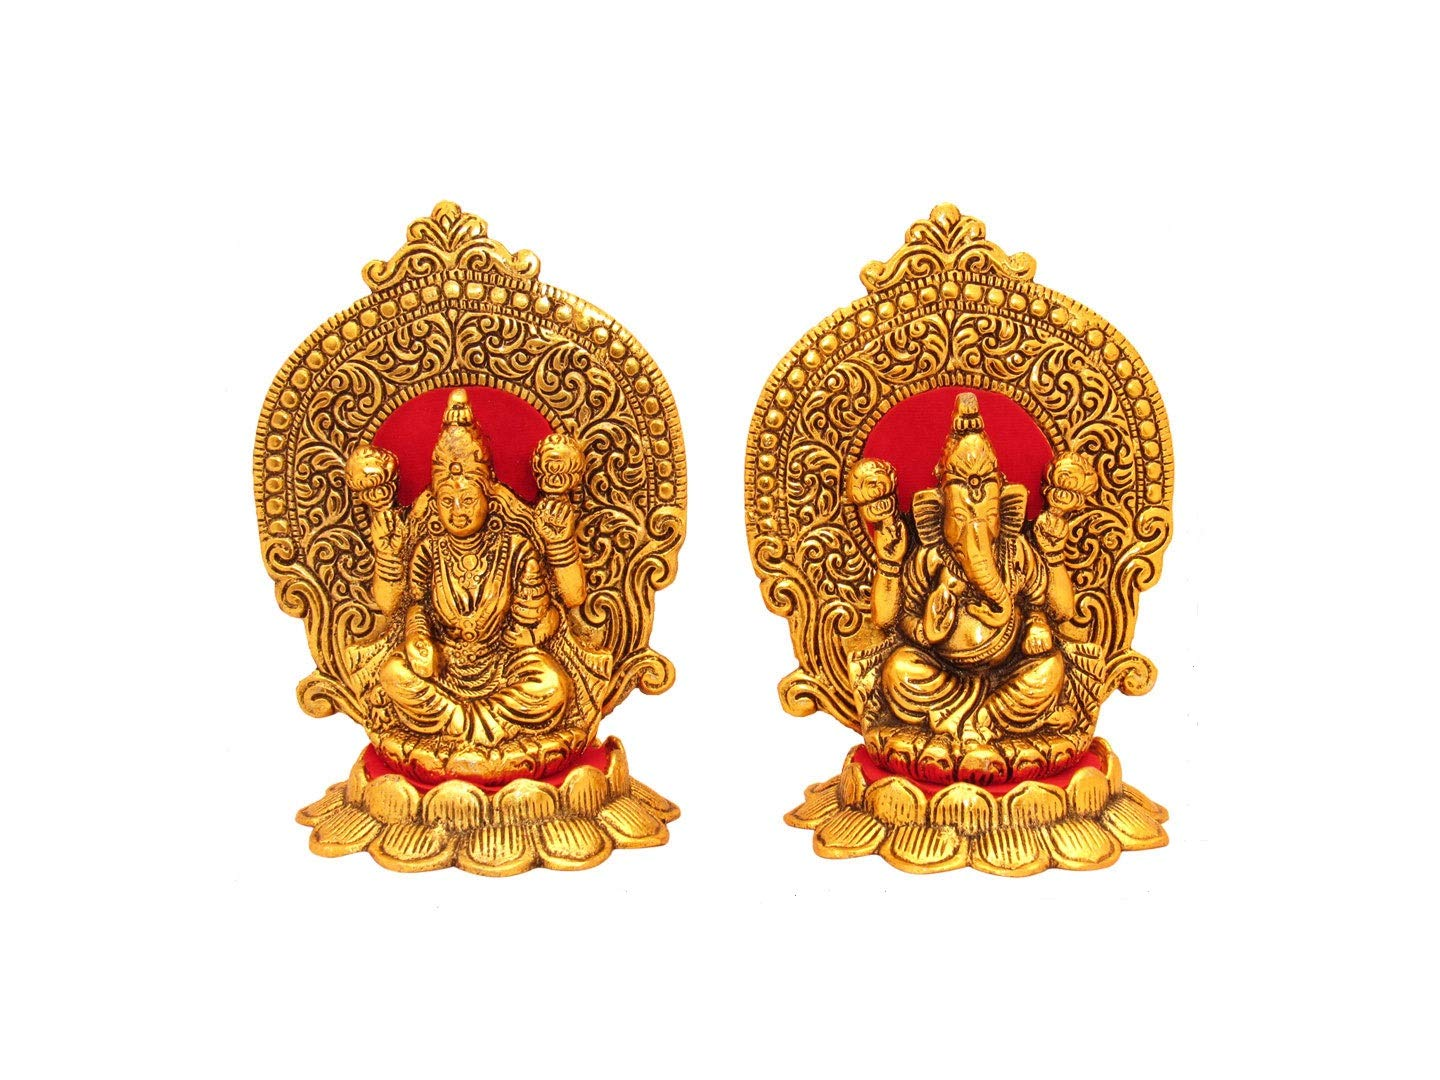 Buy Goldgiftideas Oxidized White Metal Gold Plated Laxmi Ganesha